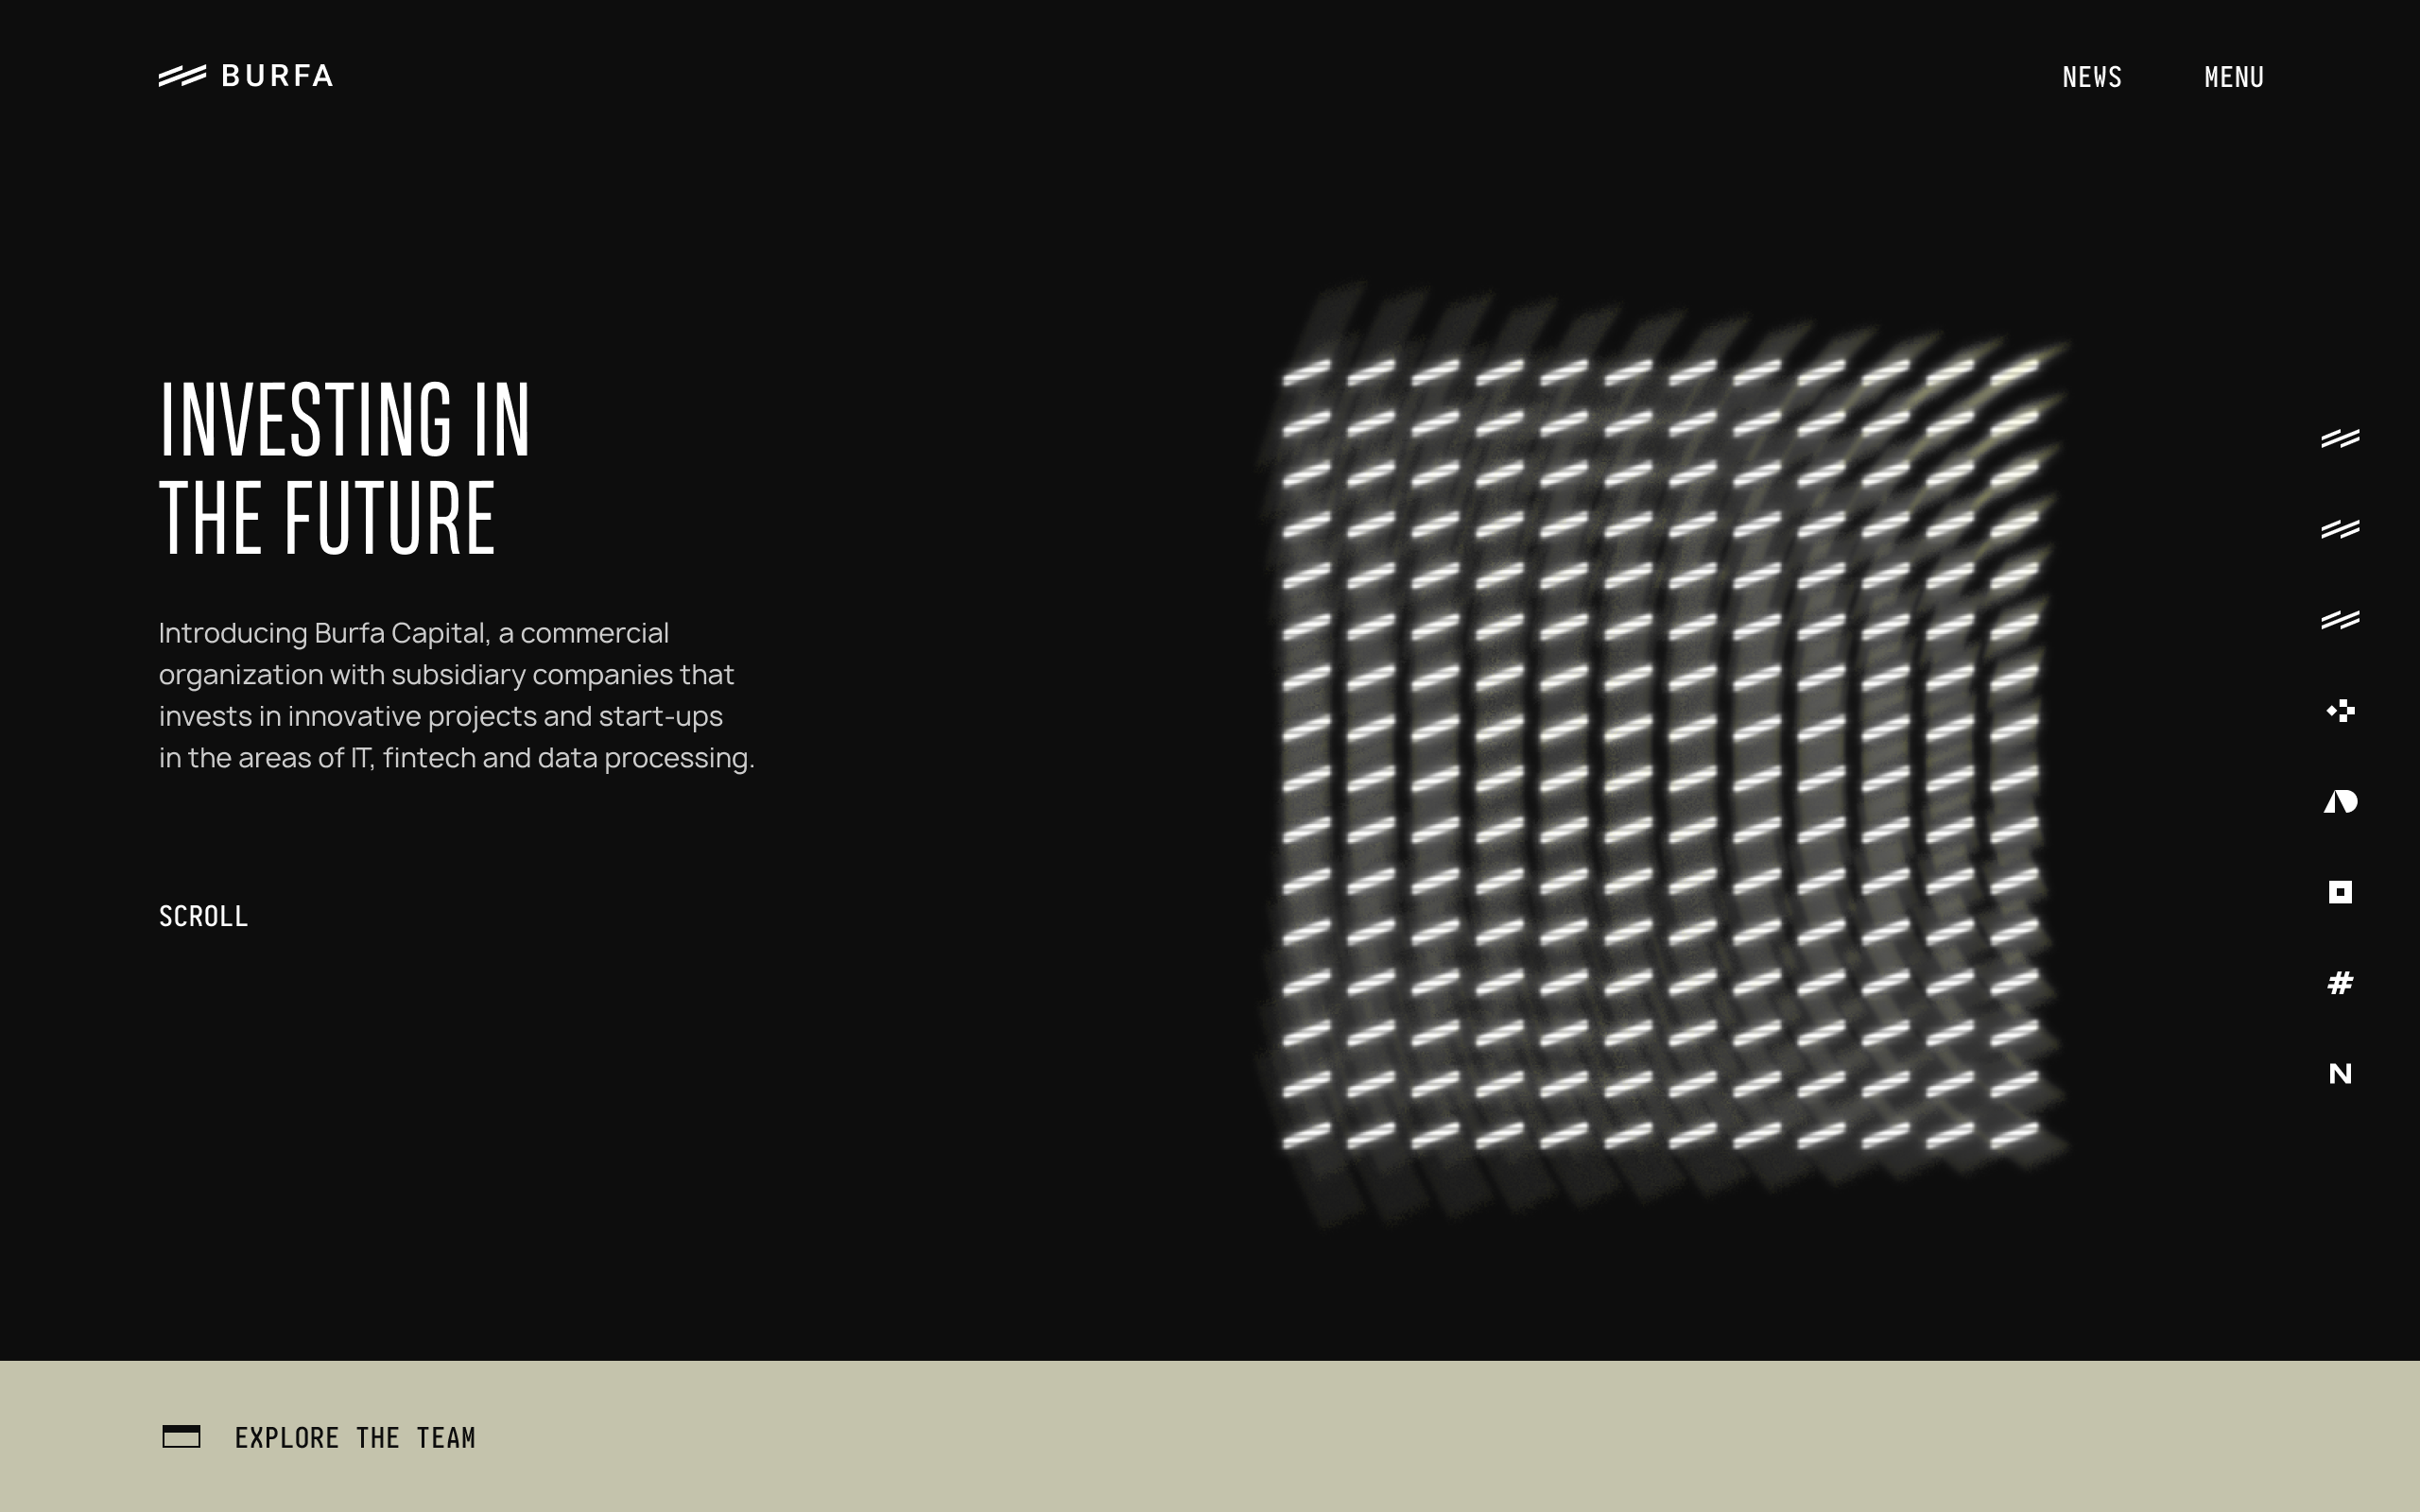 Website for an investment company | MUSE Creative Awards